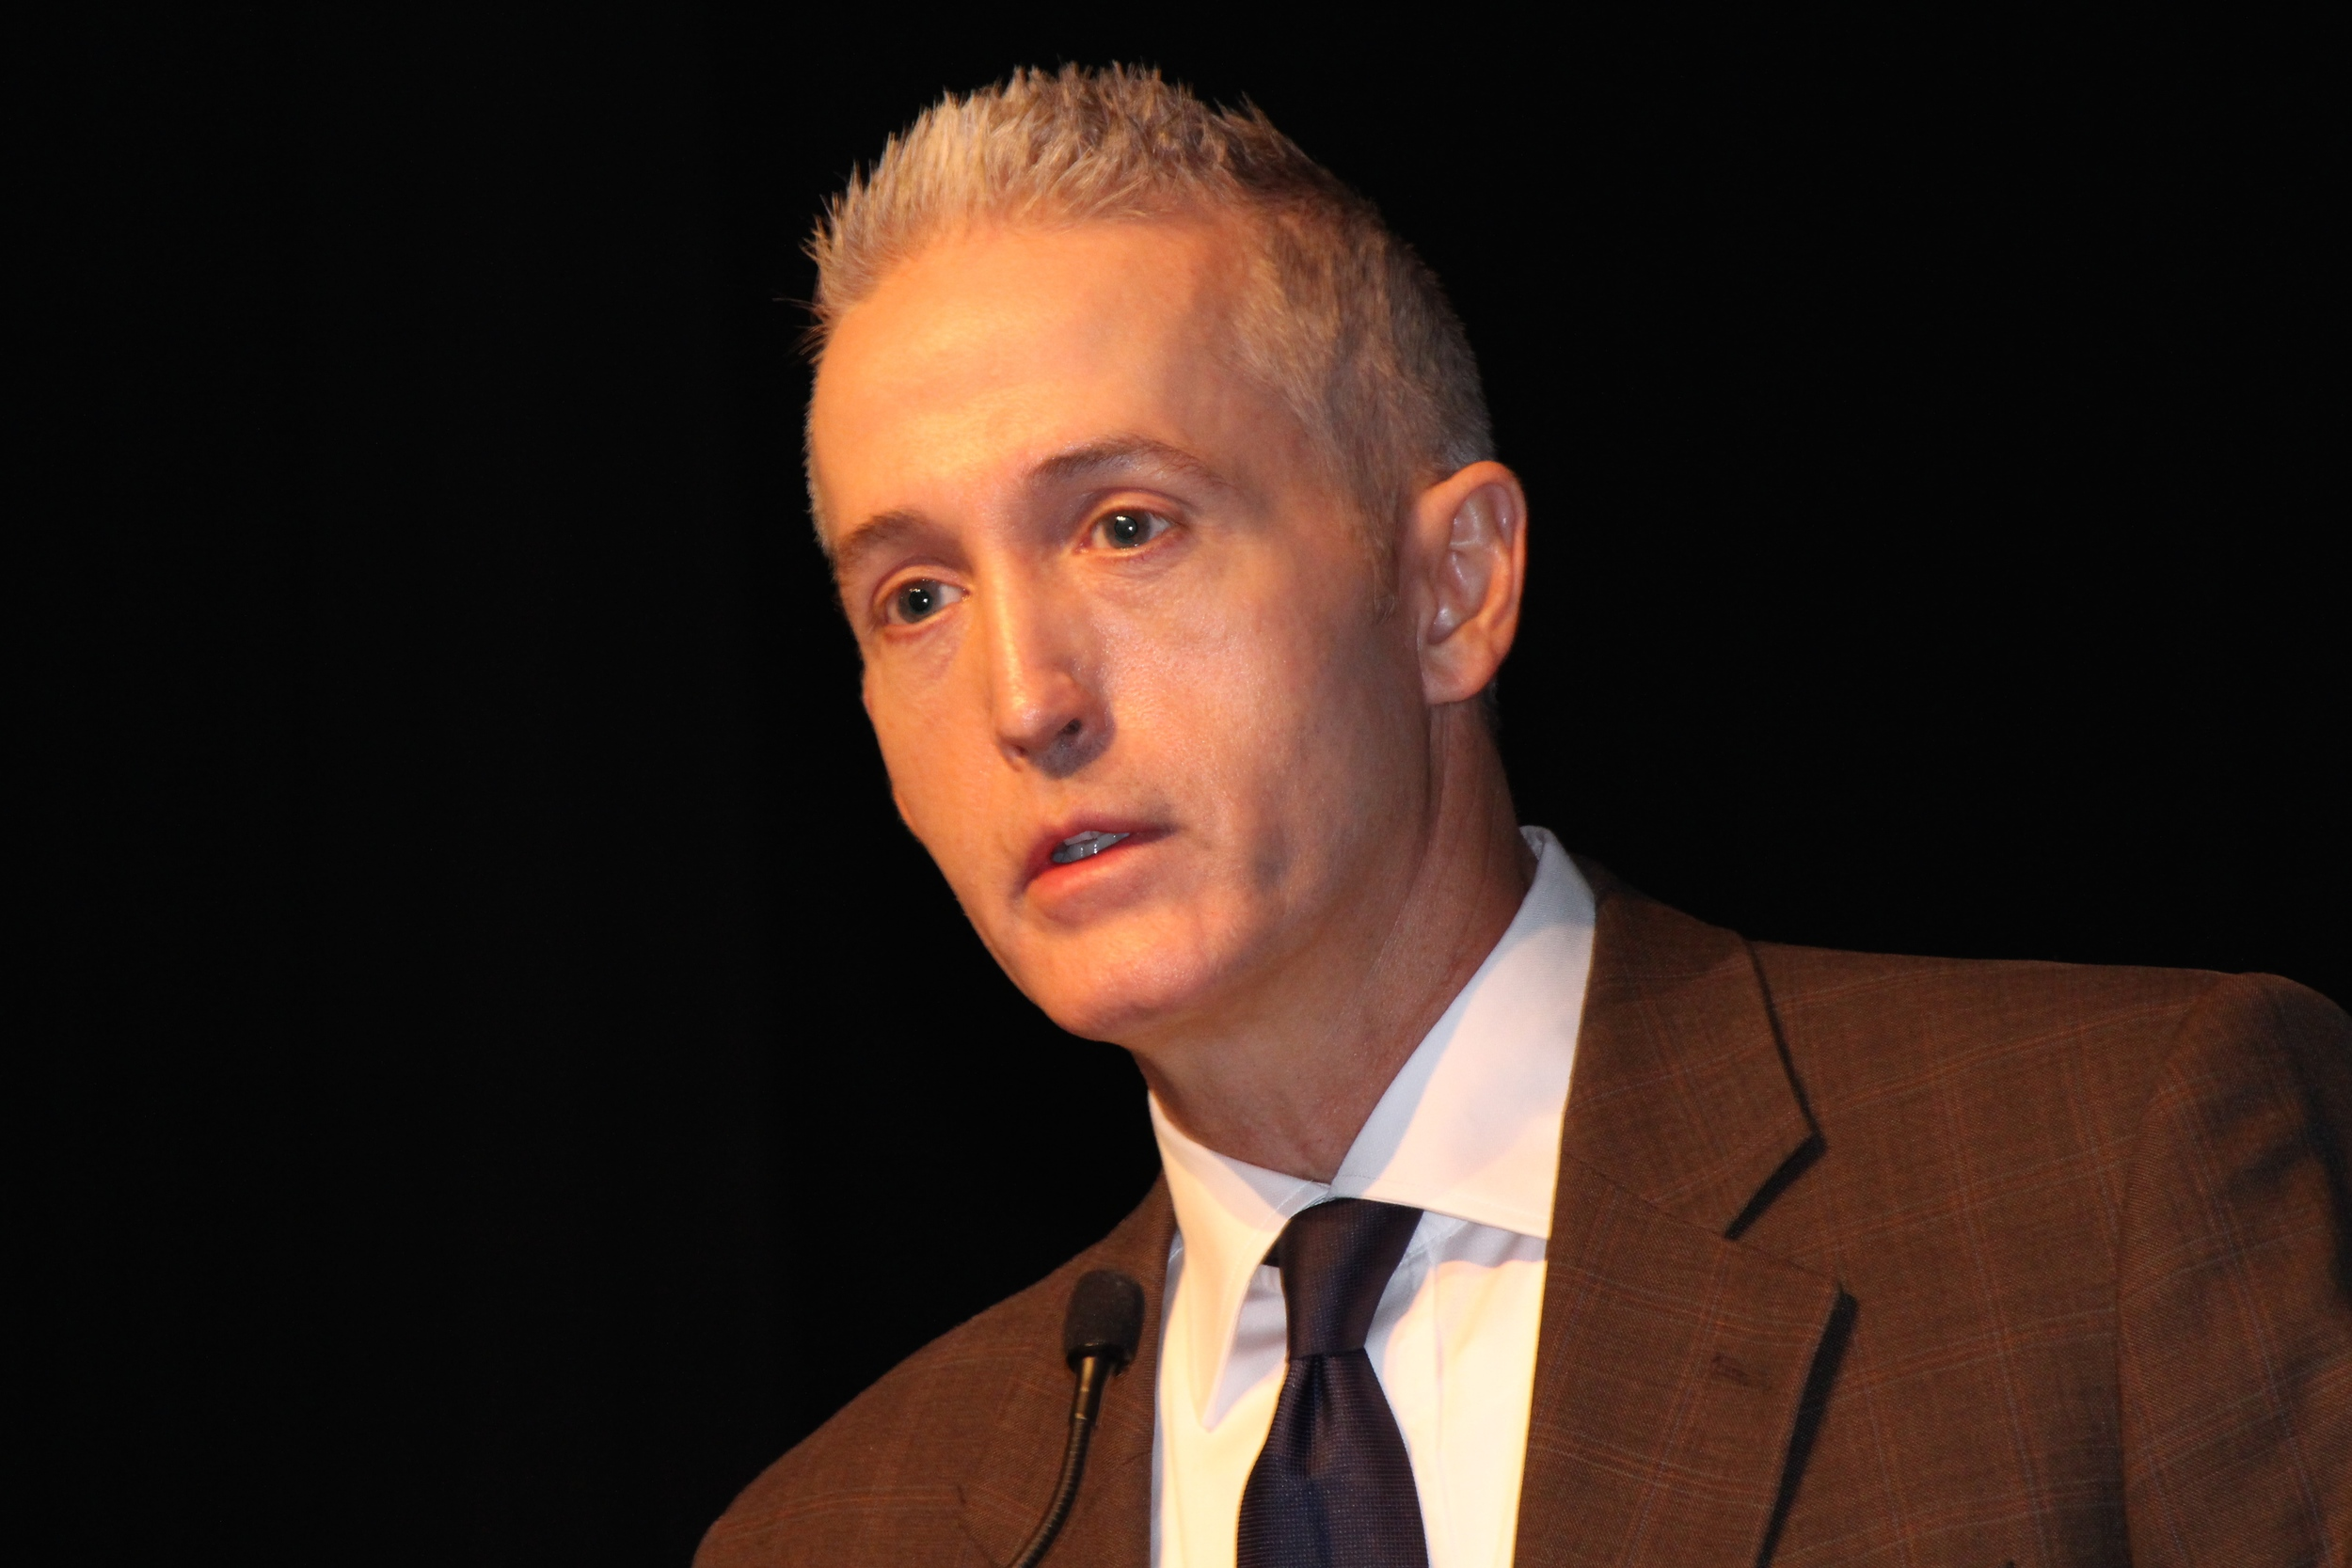 Photo Courtesy of Student Services  Congressman Trey Gowdy speaks to students at NGU in a recent chapel service about getting active in politics.